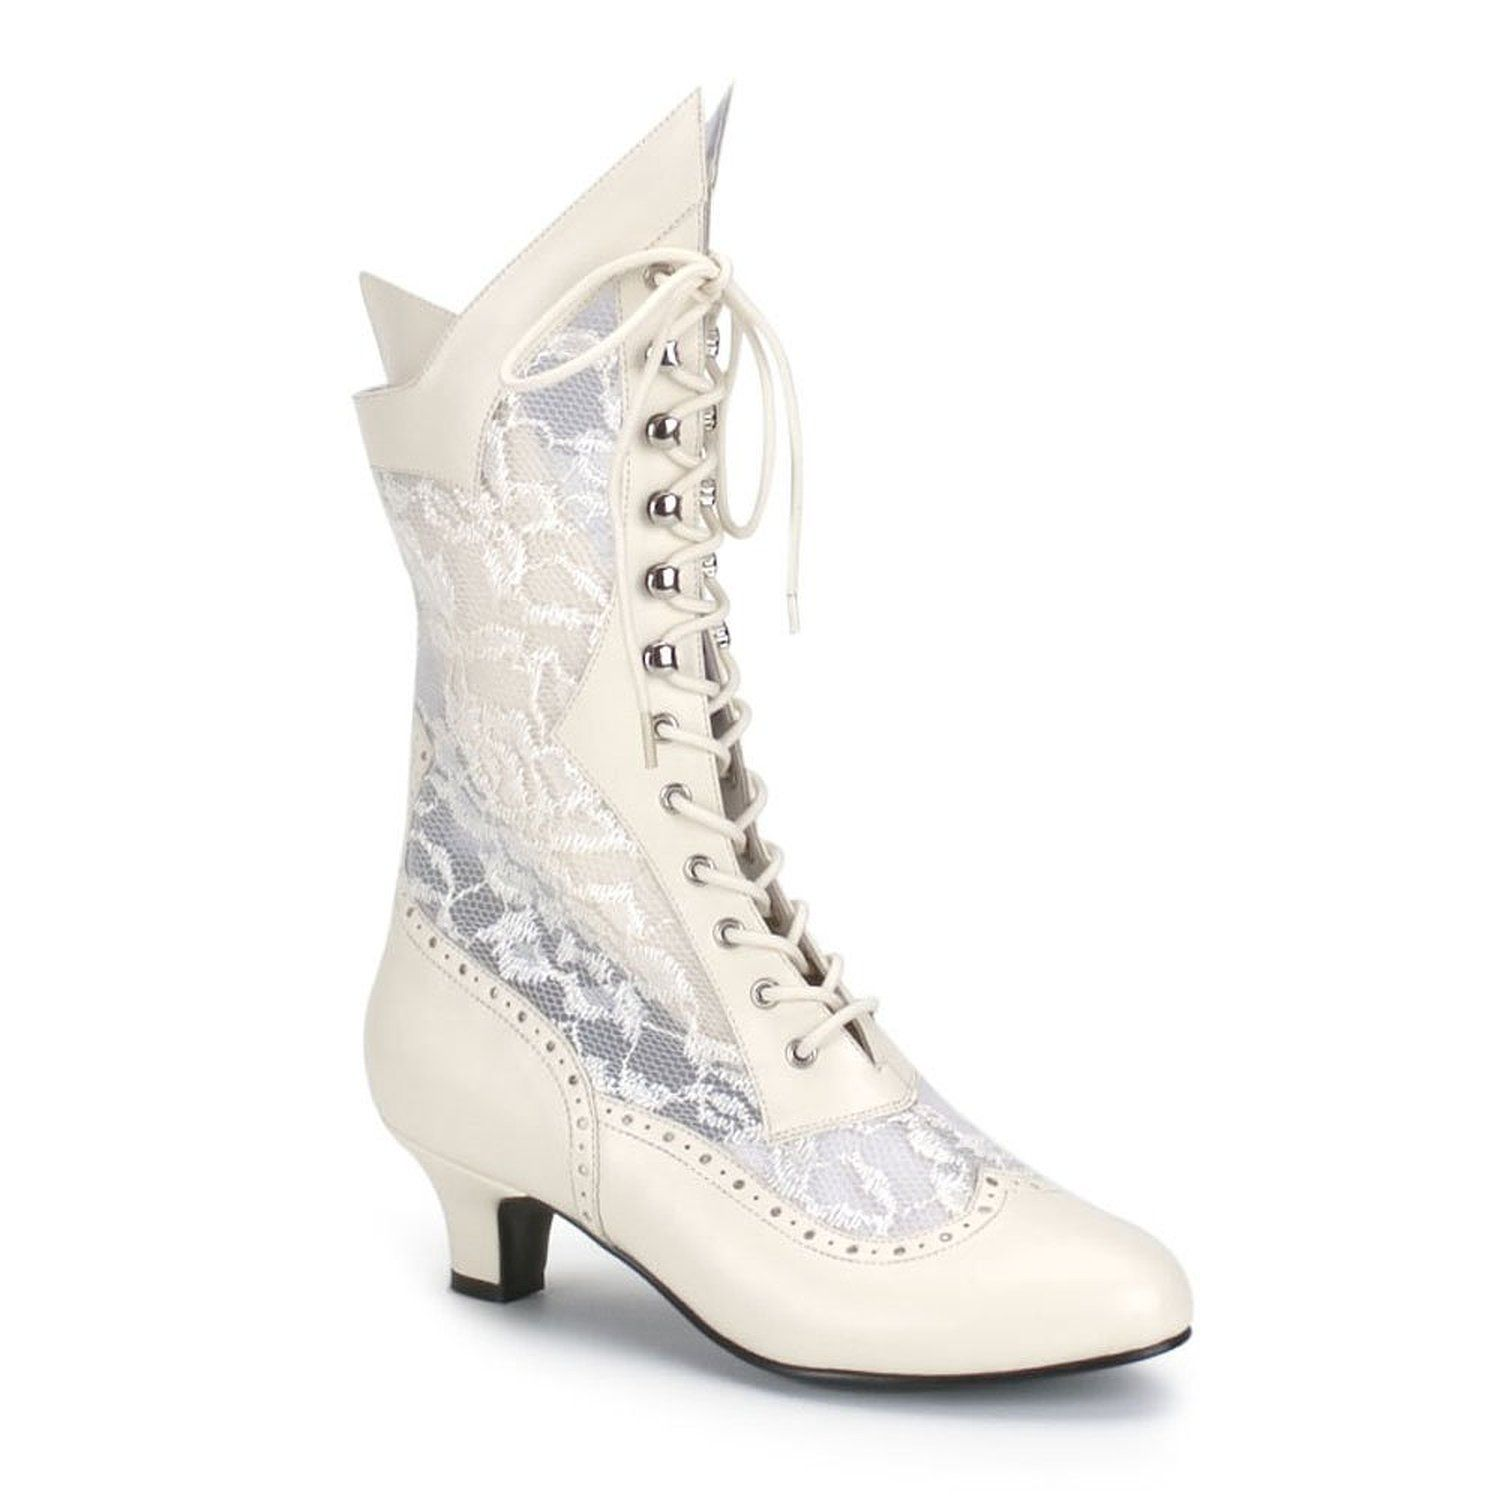 Gorgeous White Lace Up Boots In Victorian Style